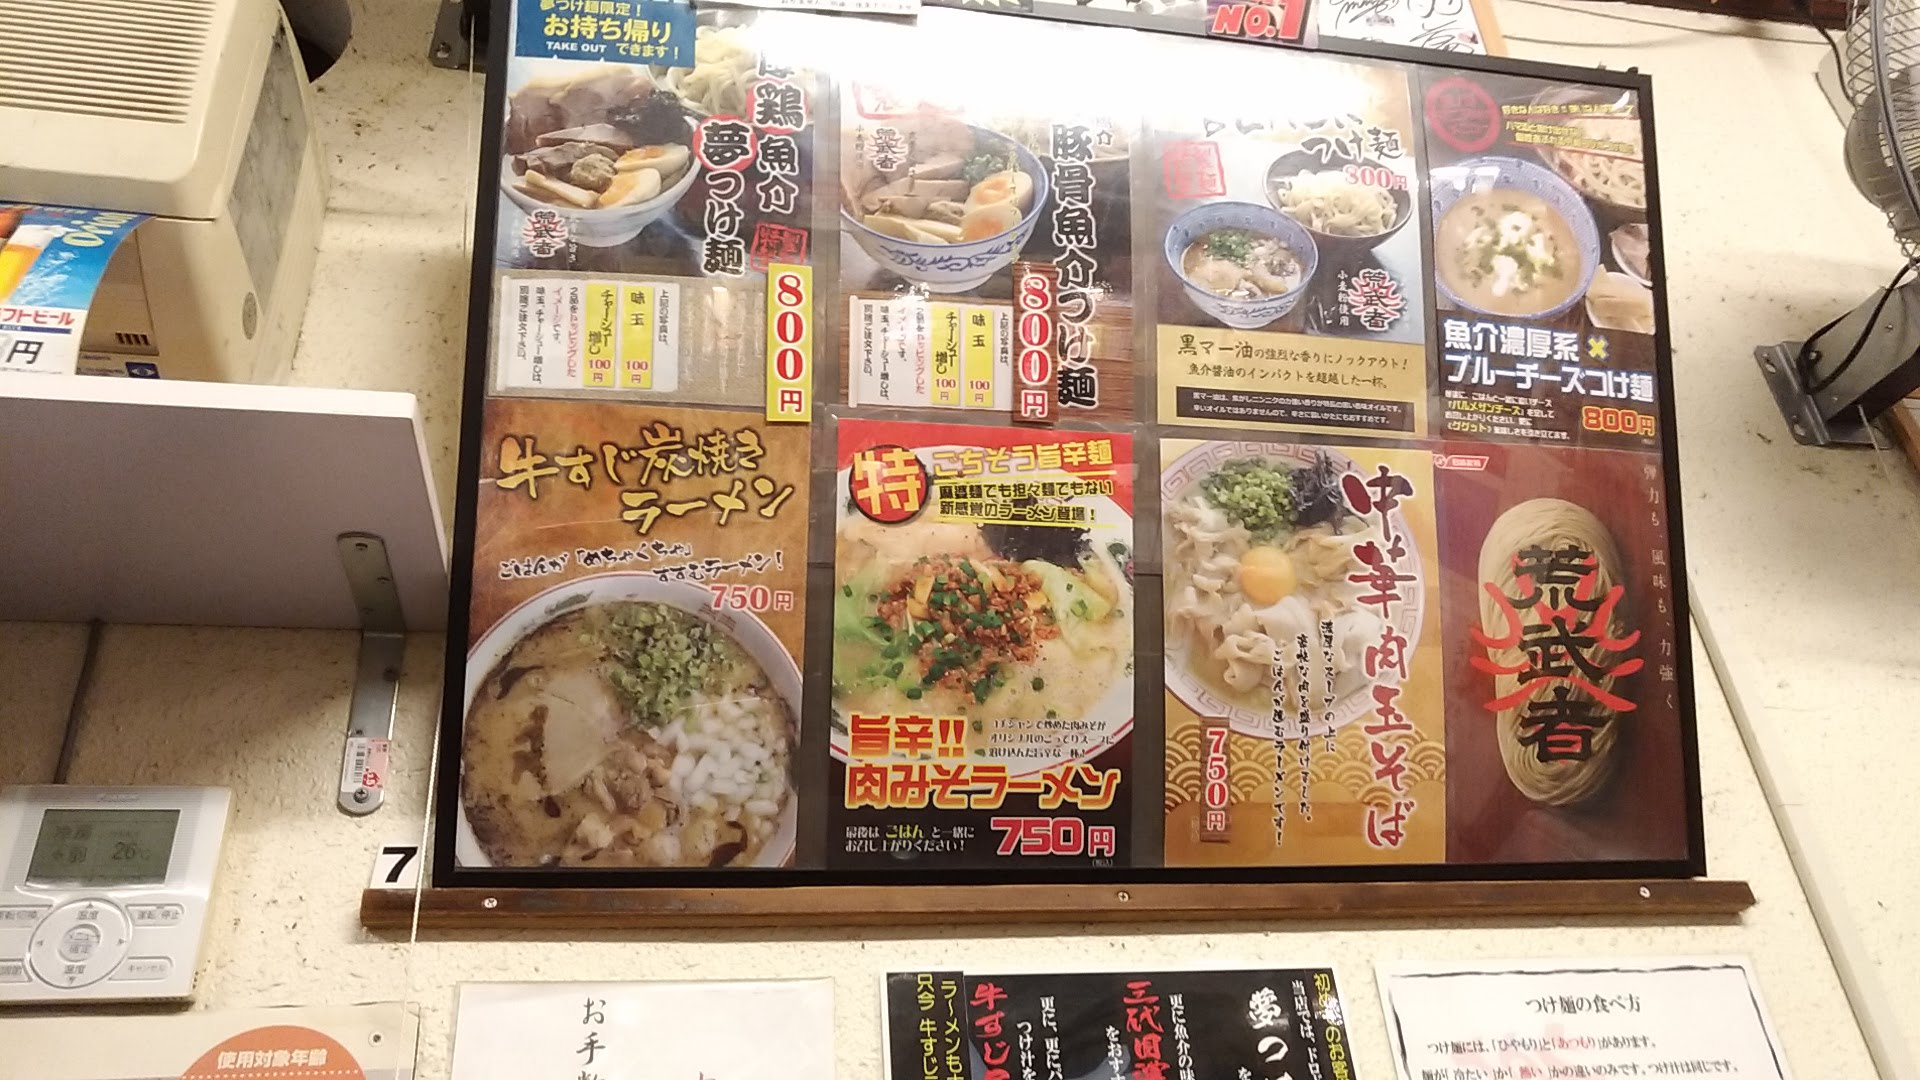 the menu of Yumenoya 2